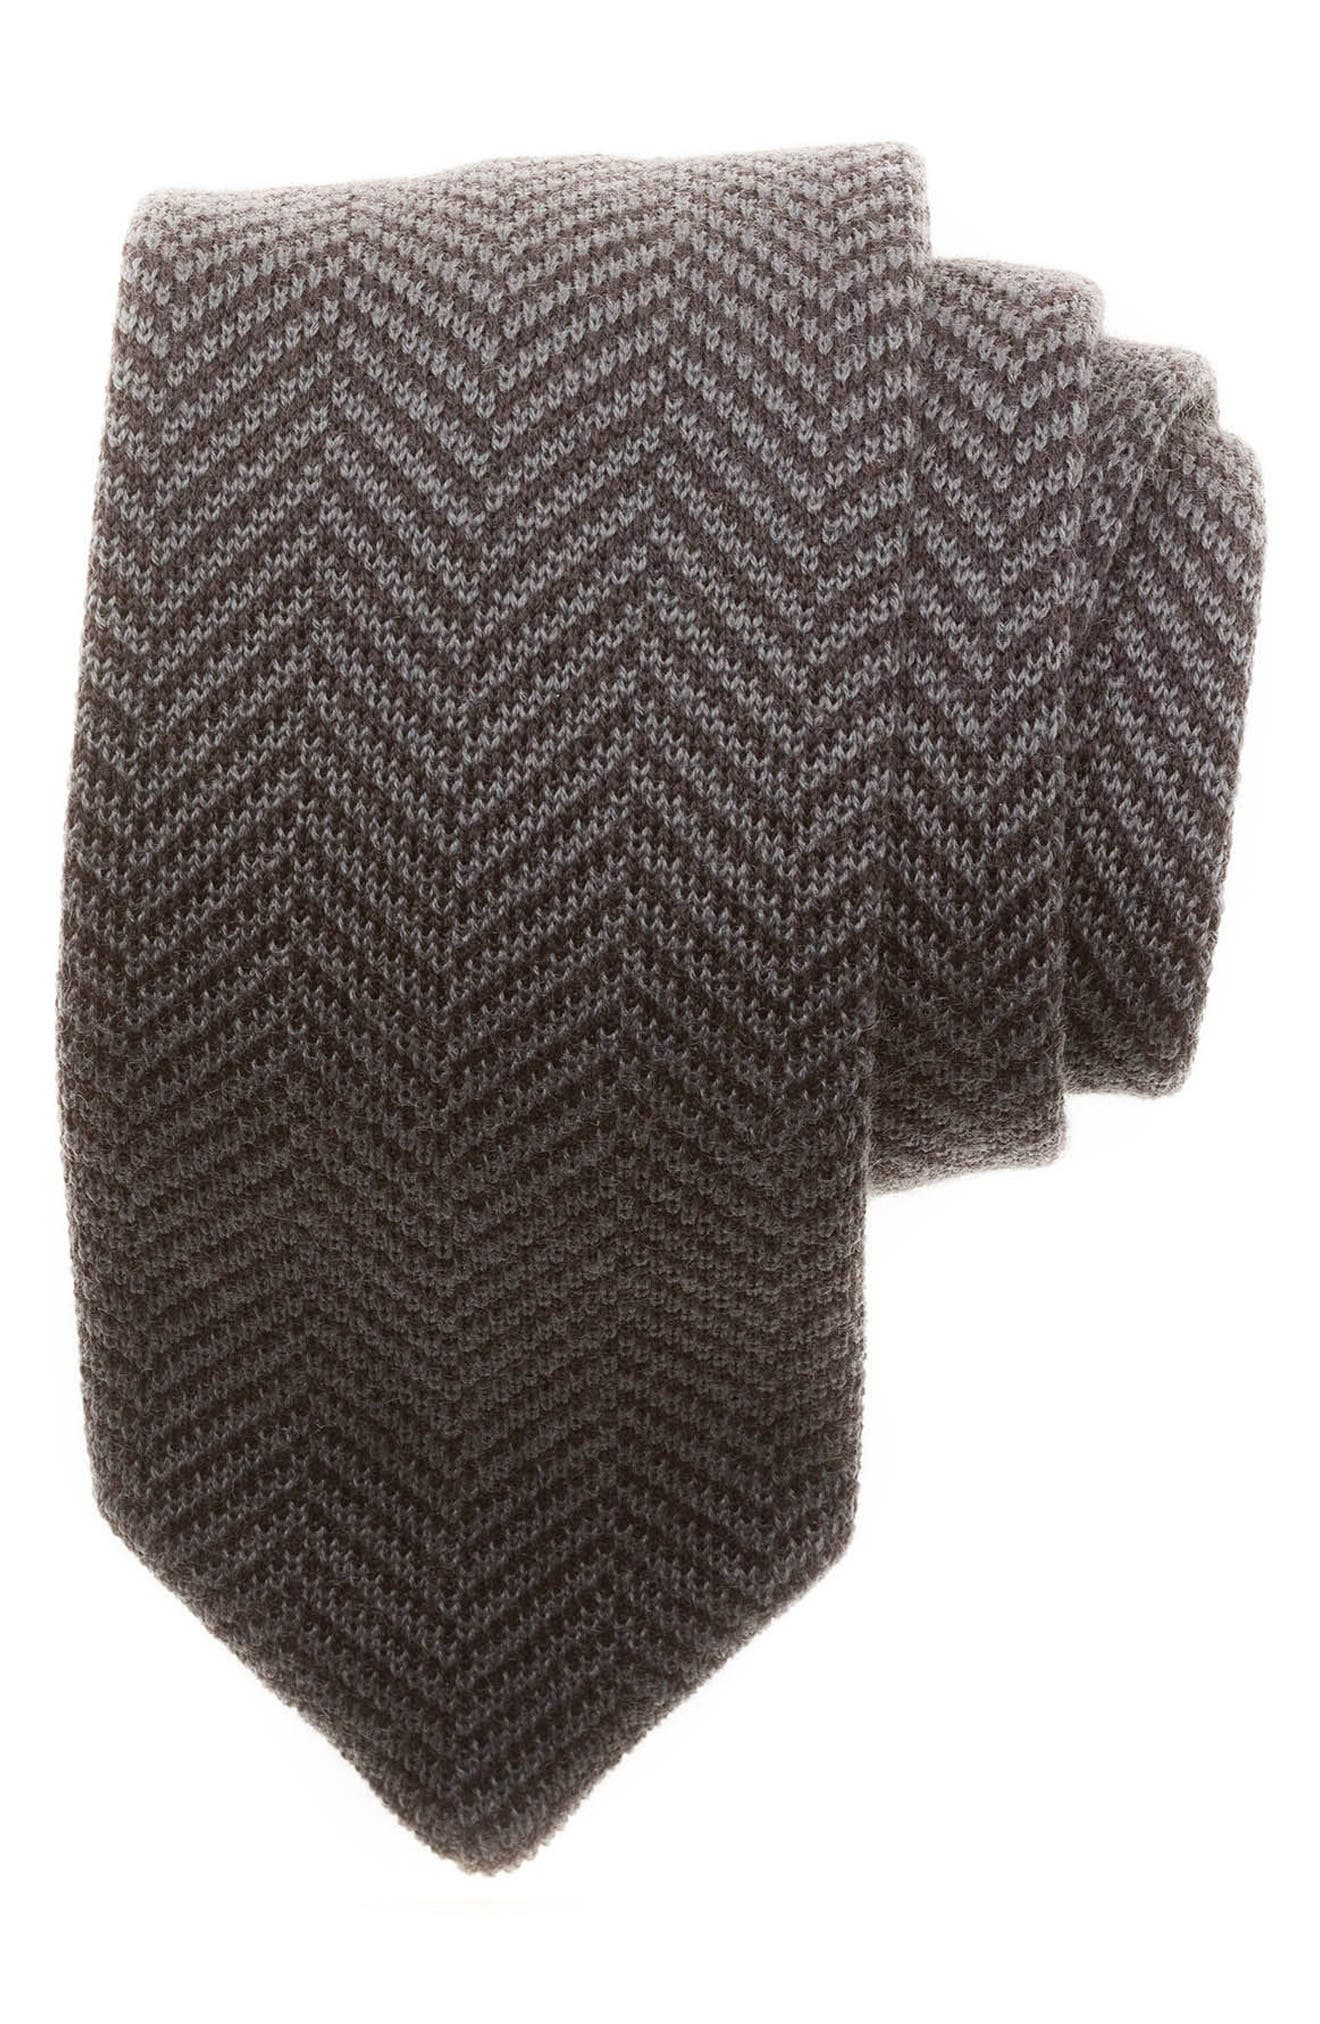 hook + ALBERT Herringbone Knit Wool Tie